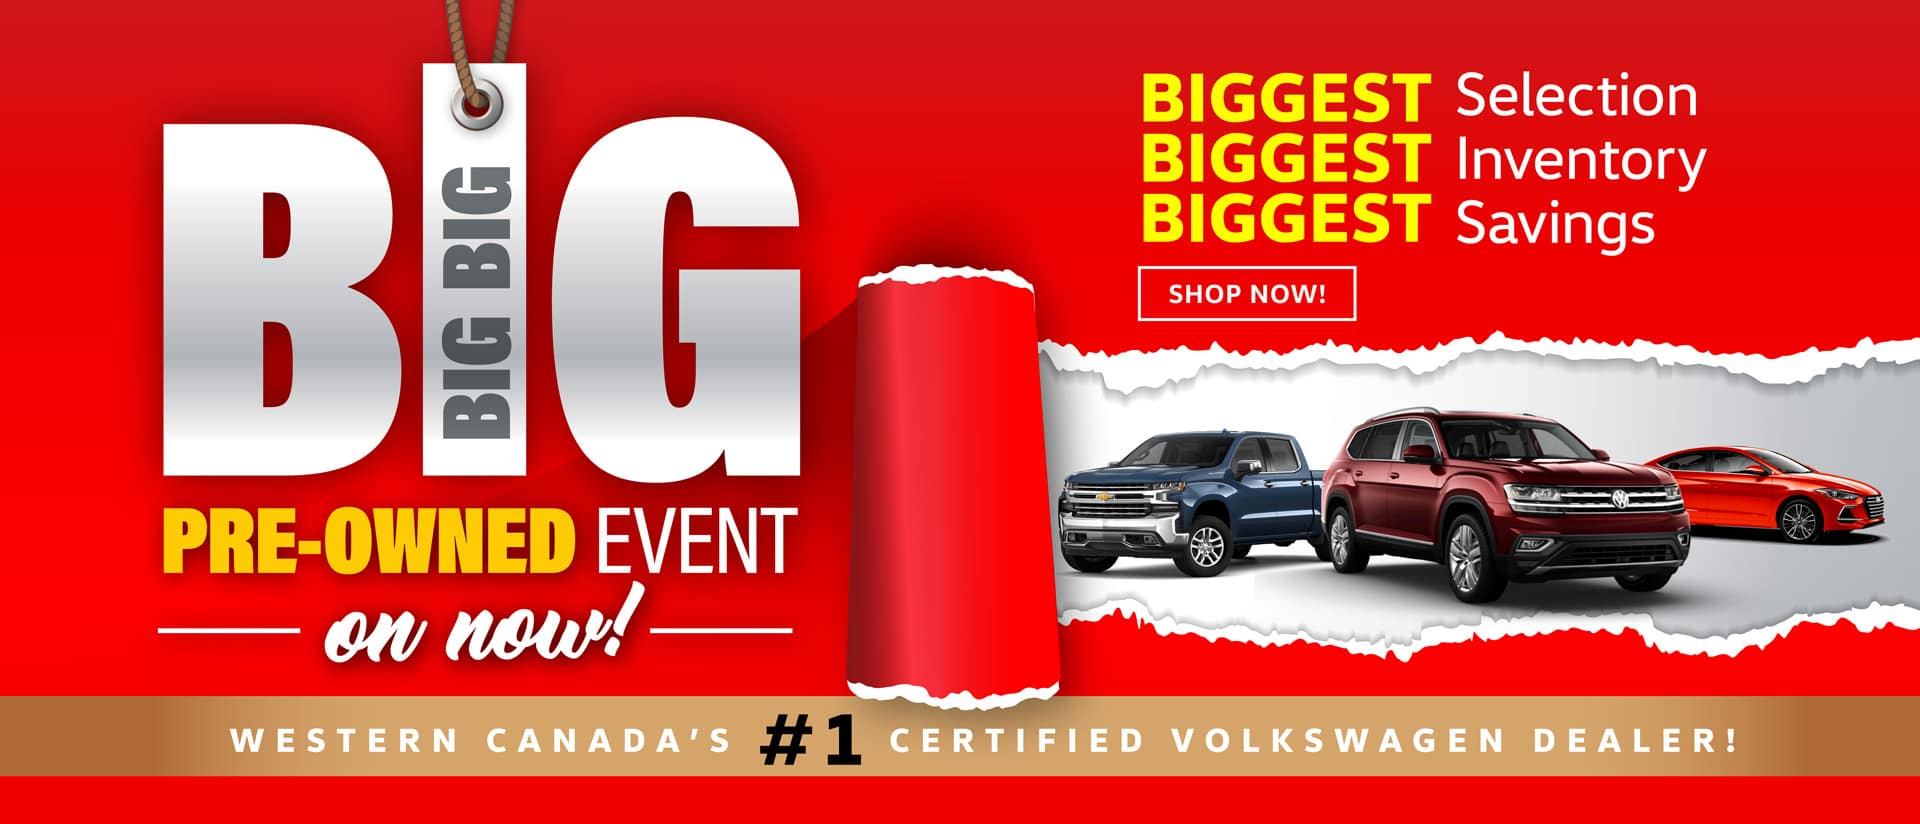 1481821_NVW_BigPre-OwnSale_WB